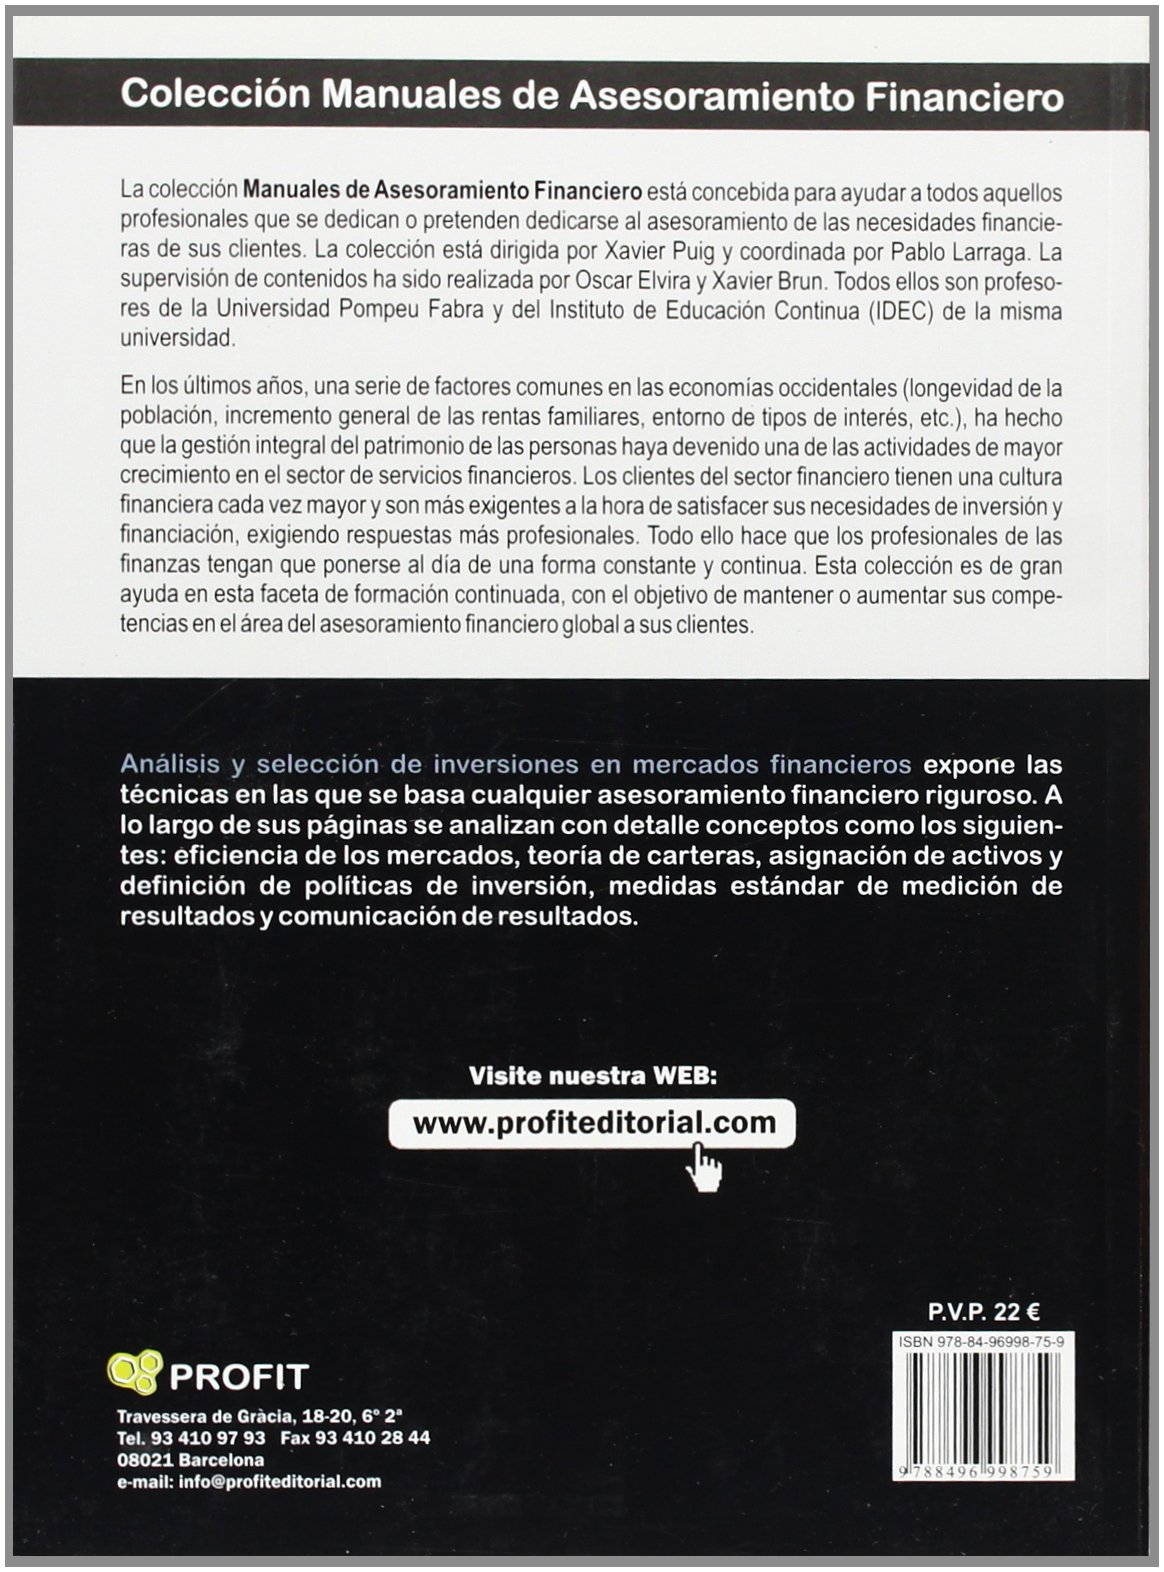 Analisis y seleccion de inversiones en Mercados Financieros (Spanish Edition): Xavier Brun: 9788496998759: Amazon.com: Books